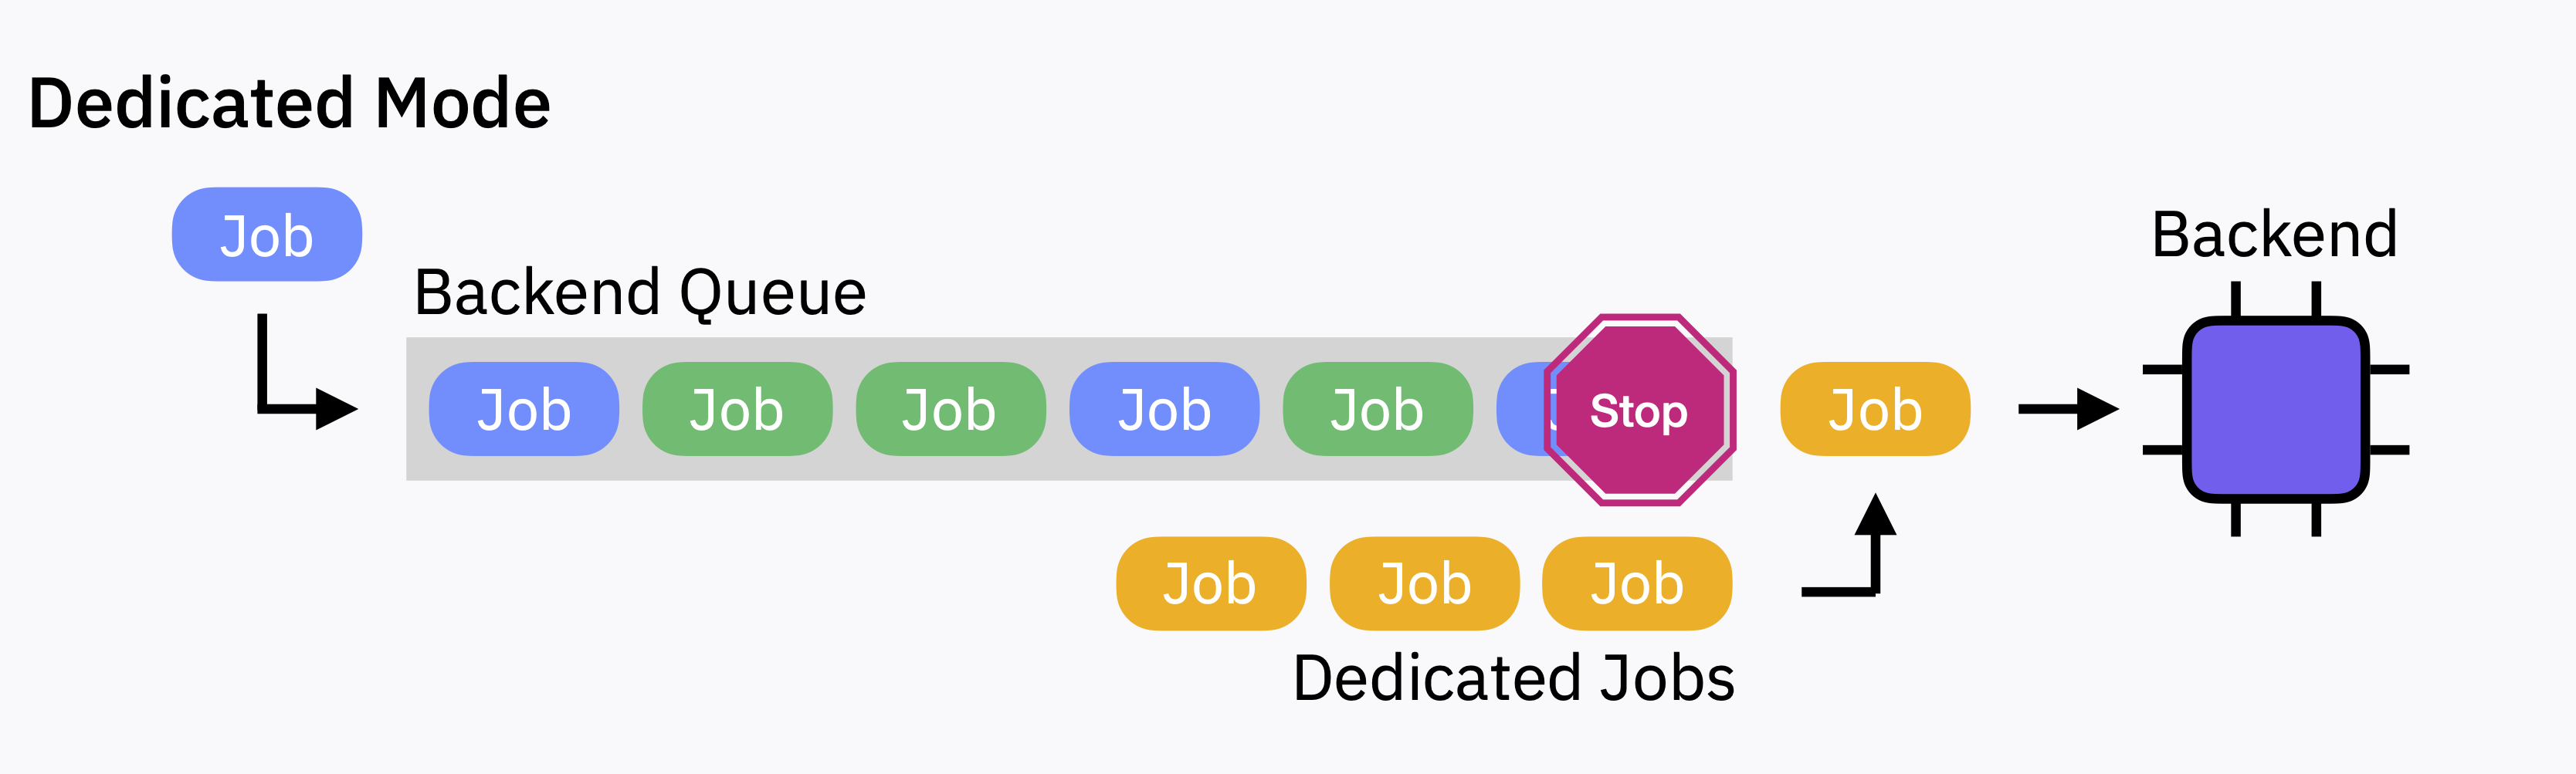 Dedicated mode with dedicated jobs.